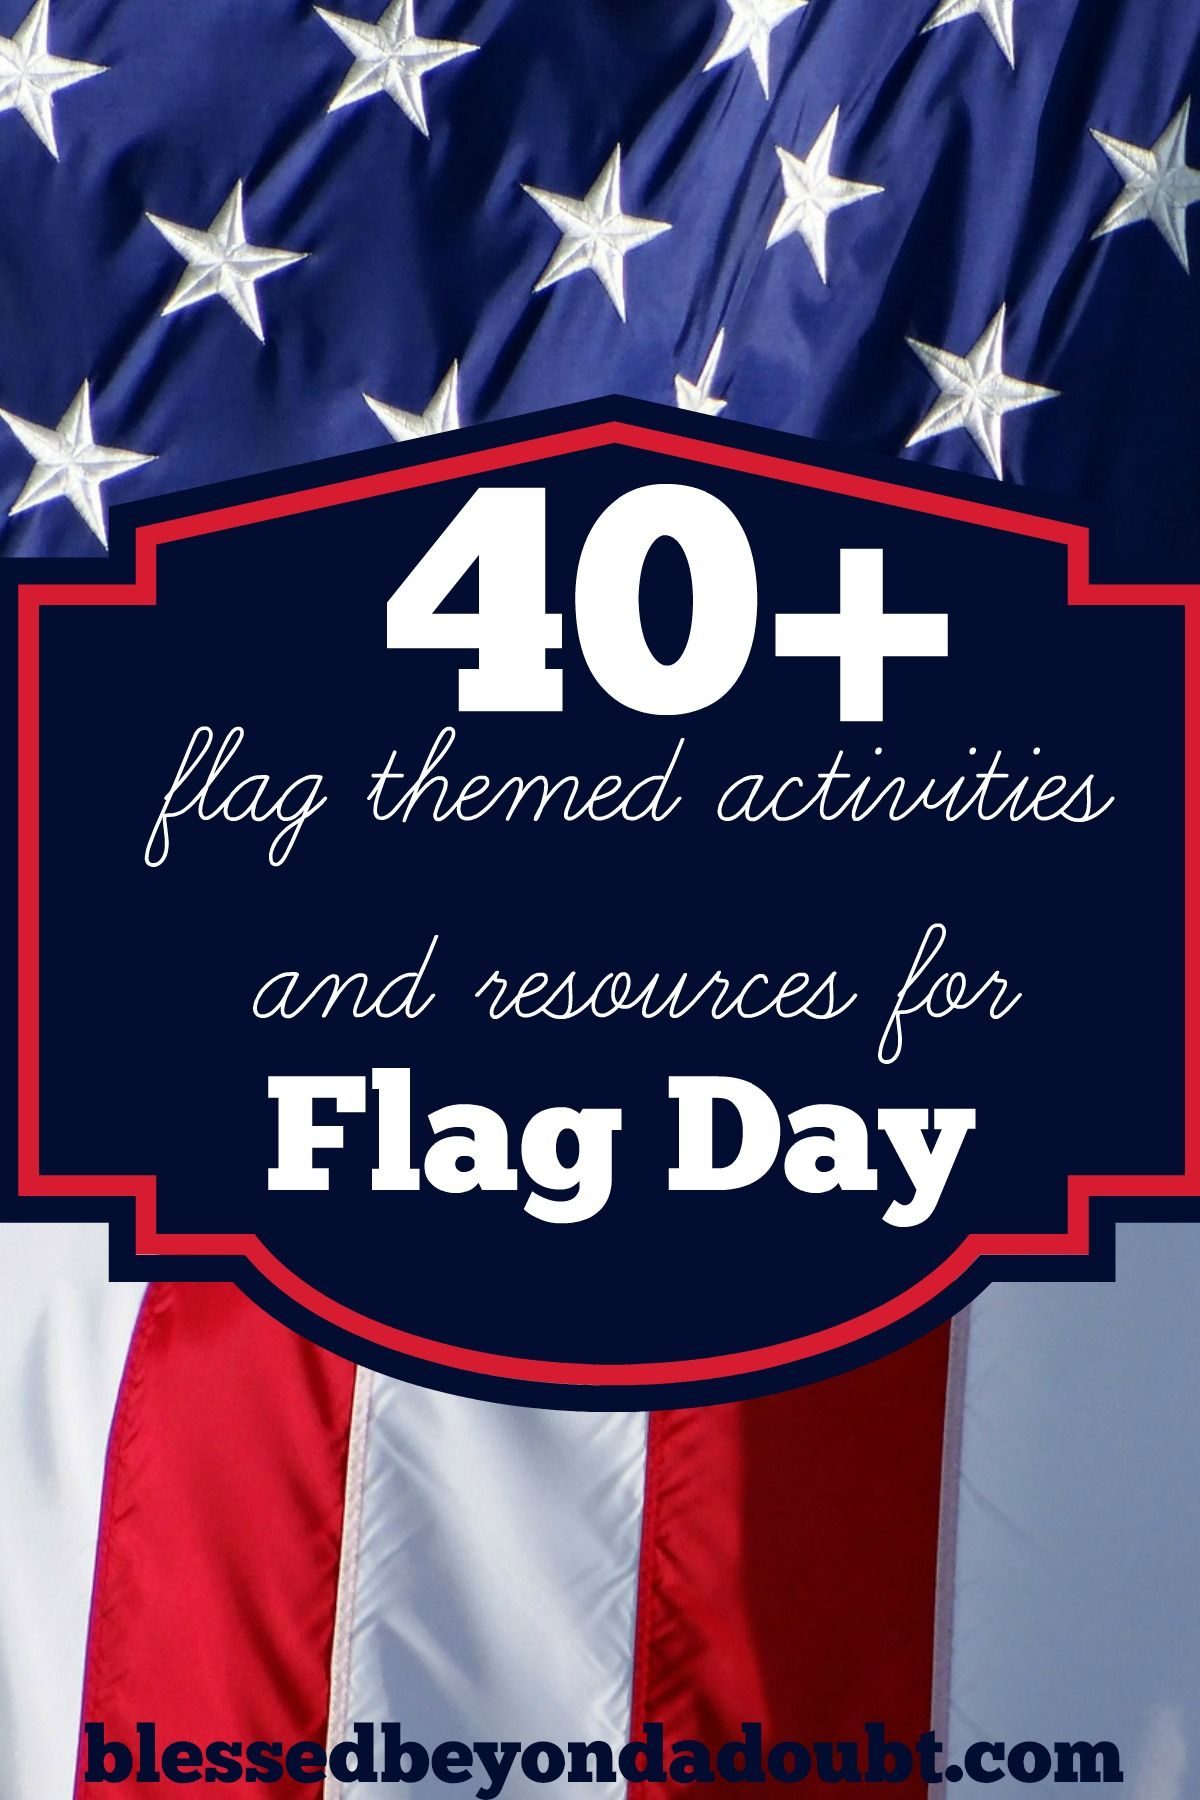 40 Flag Themed Activities And Resources For Flag Day